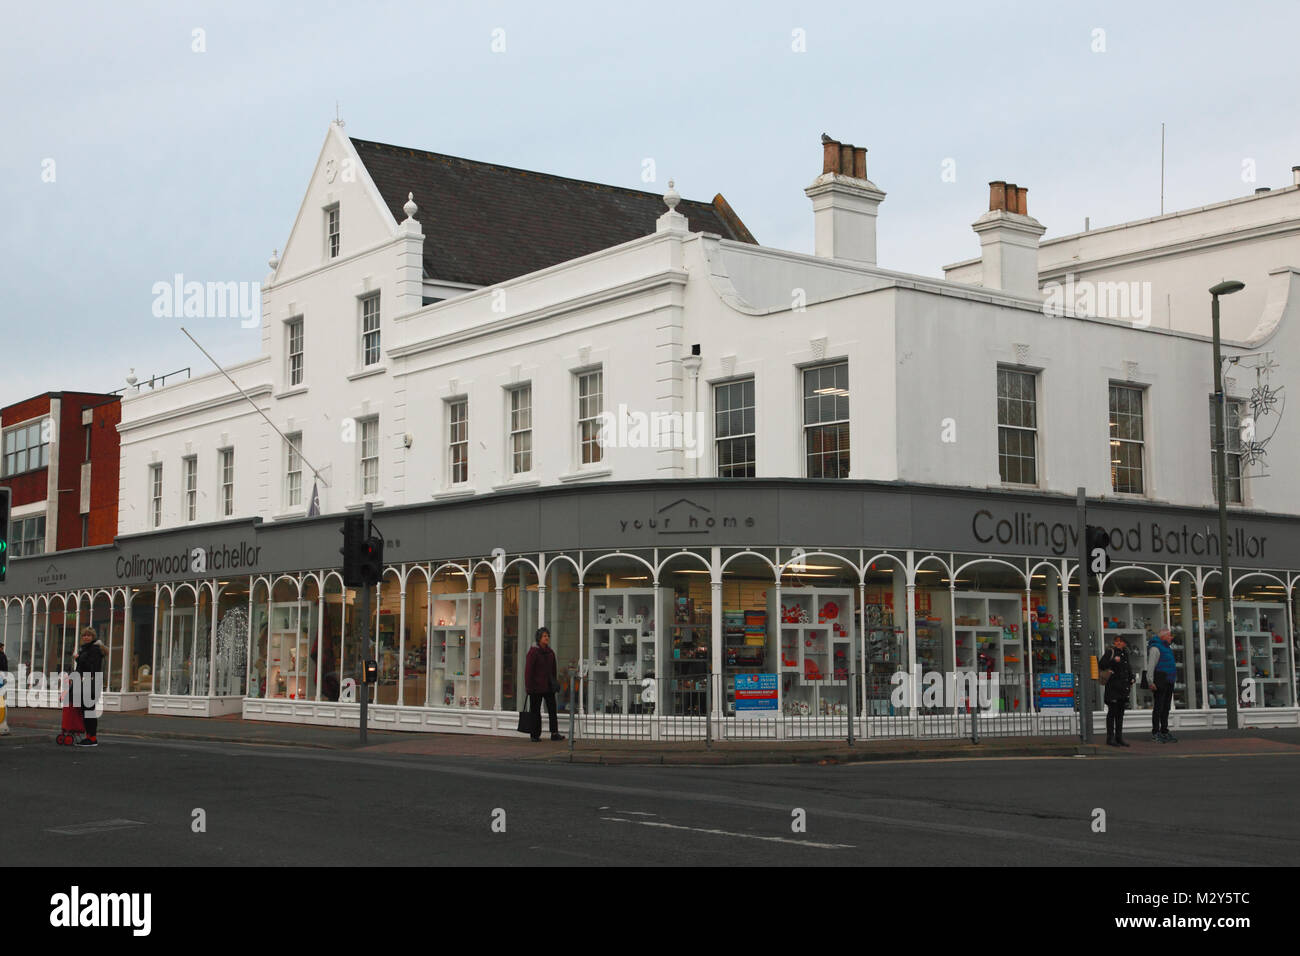 Furniture store Collingwood Batchelor in Horley, Surrey Stock Photo